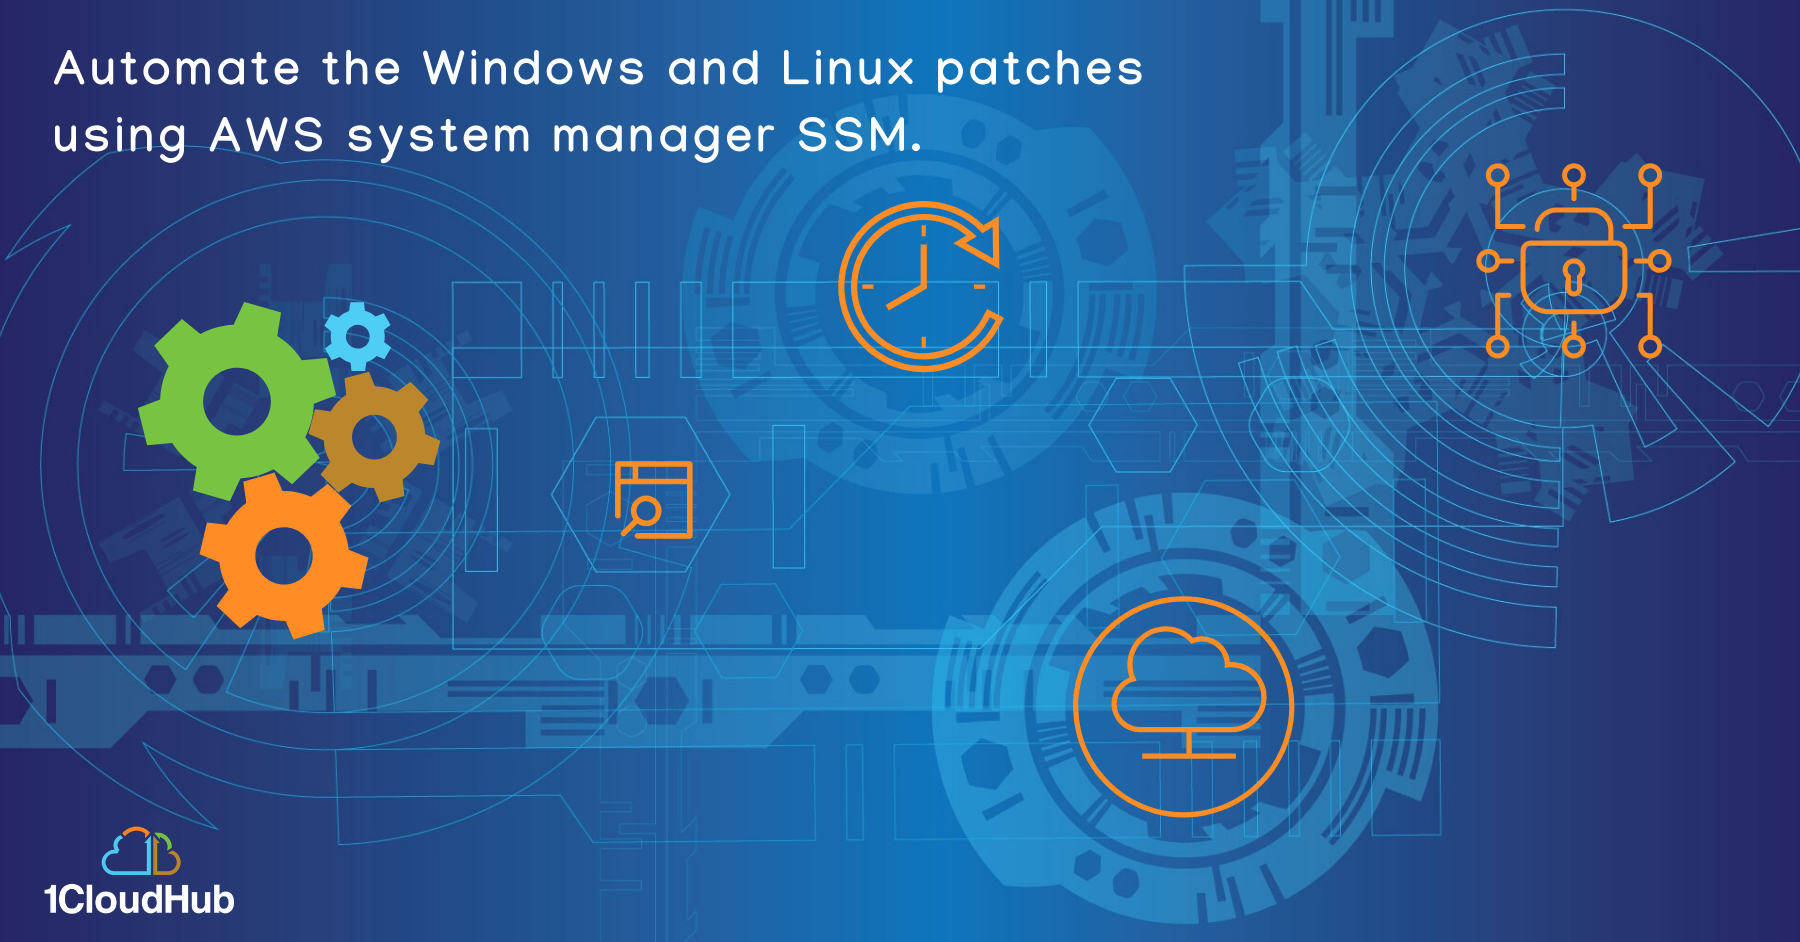 Automate the Windows and Linux patches using AWS system manager SSM.